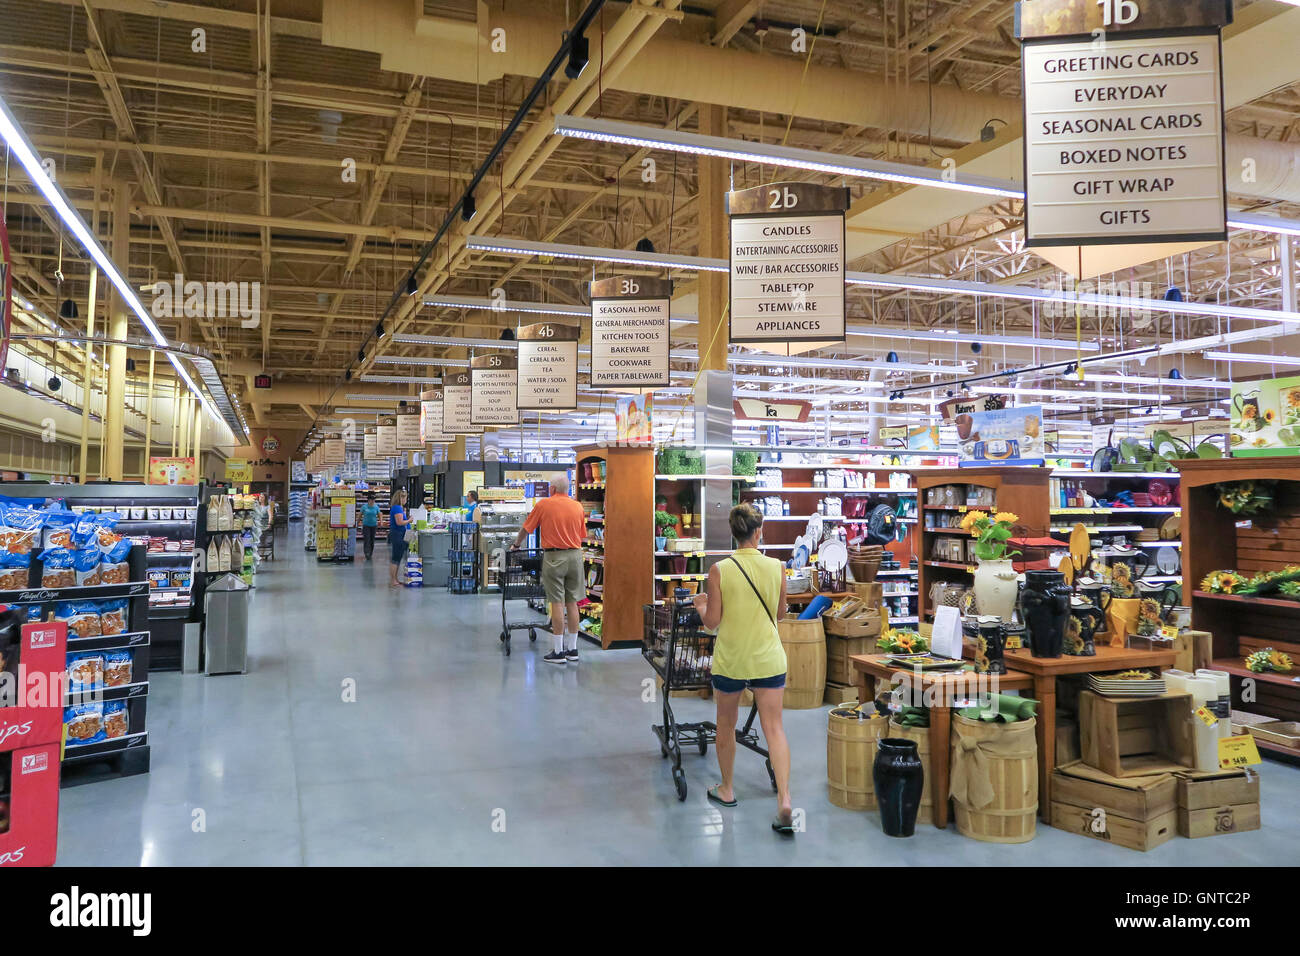 an overview of a grocery store Current, comprehensive coverage of the grocery stores & supermarkets industry includes: industry forecasts, trends, financial information & detailed analysis updated 3/12/2018.